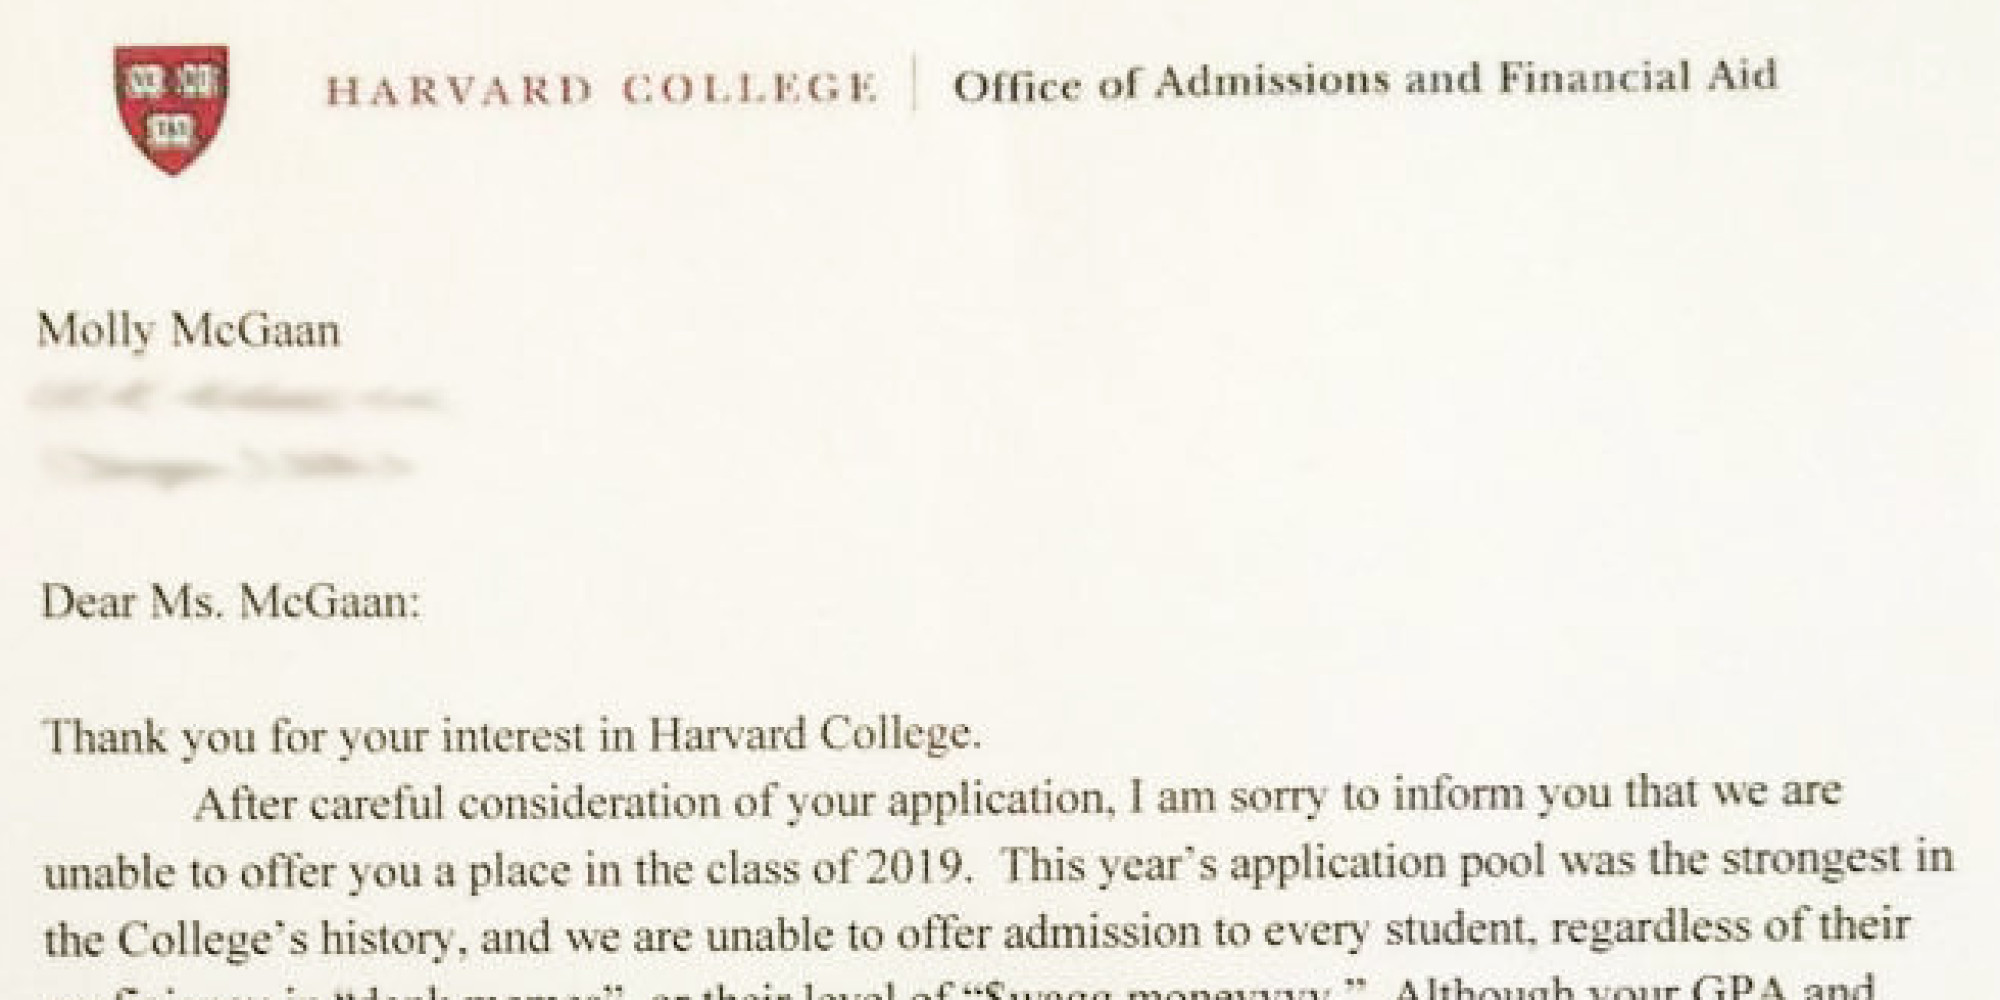 ivy league admissions essays buy successful stanford application  sample essays accepted by harvard ivy league admissions are a sham confessions of a harvard gatekeeper